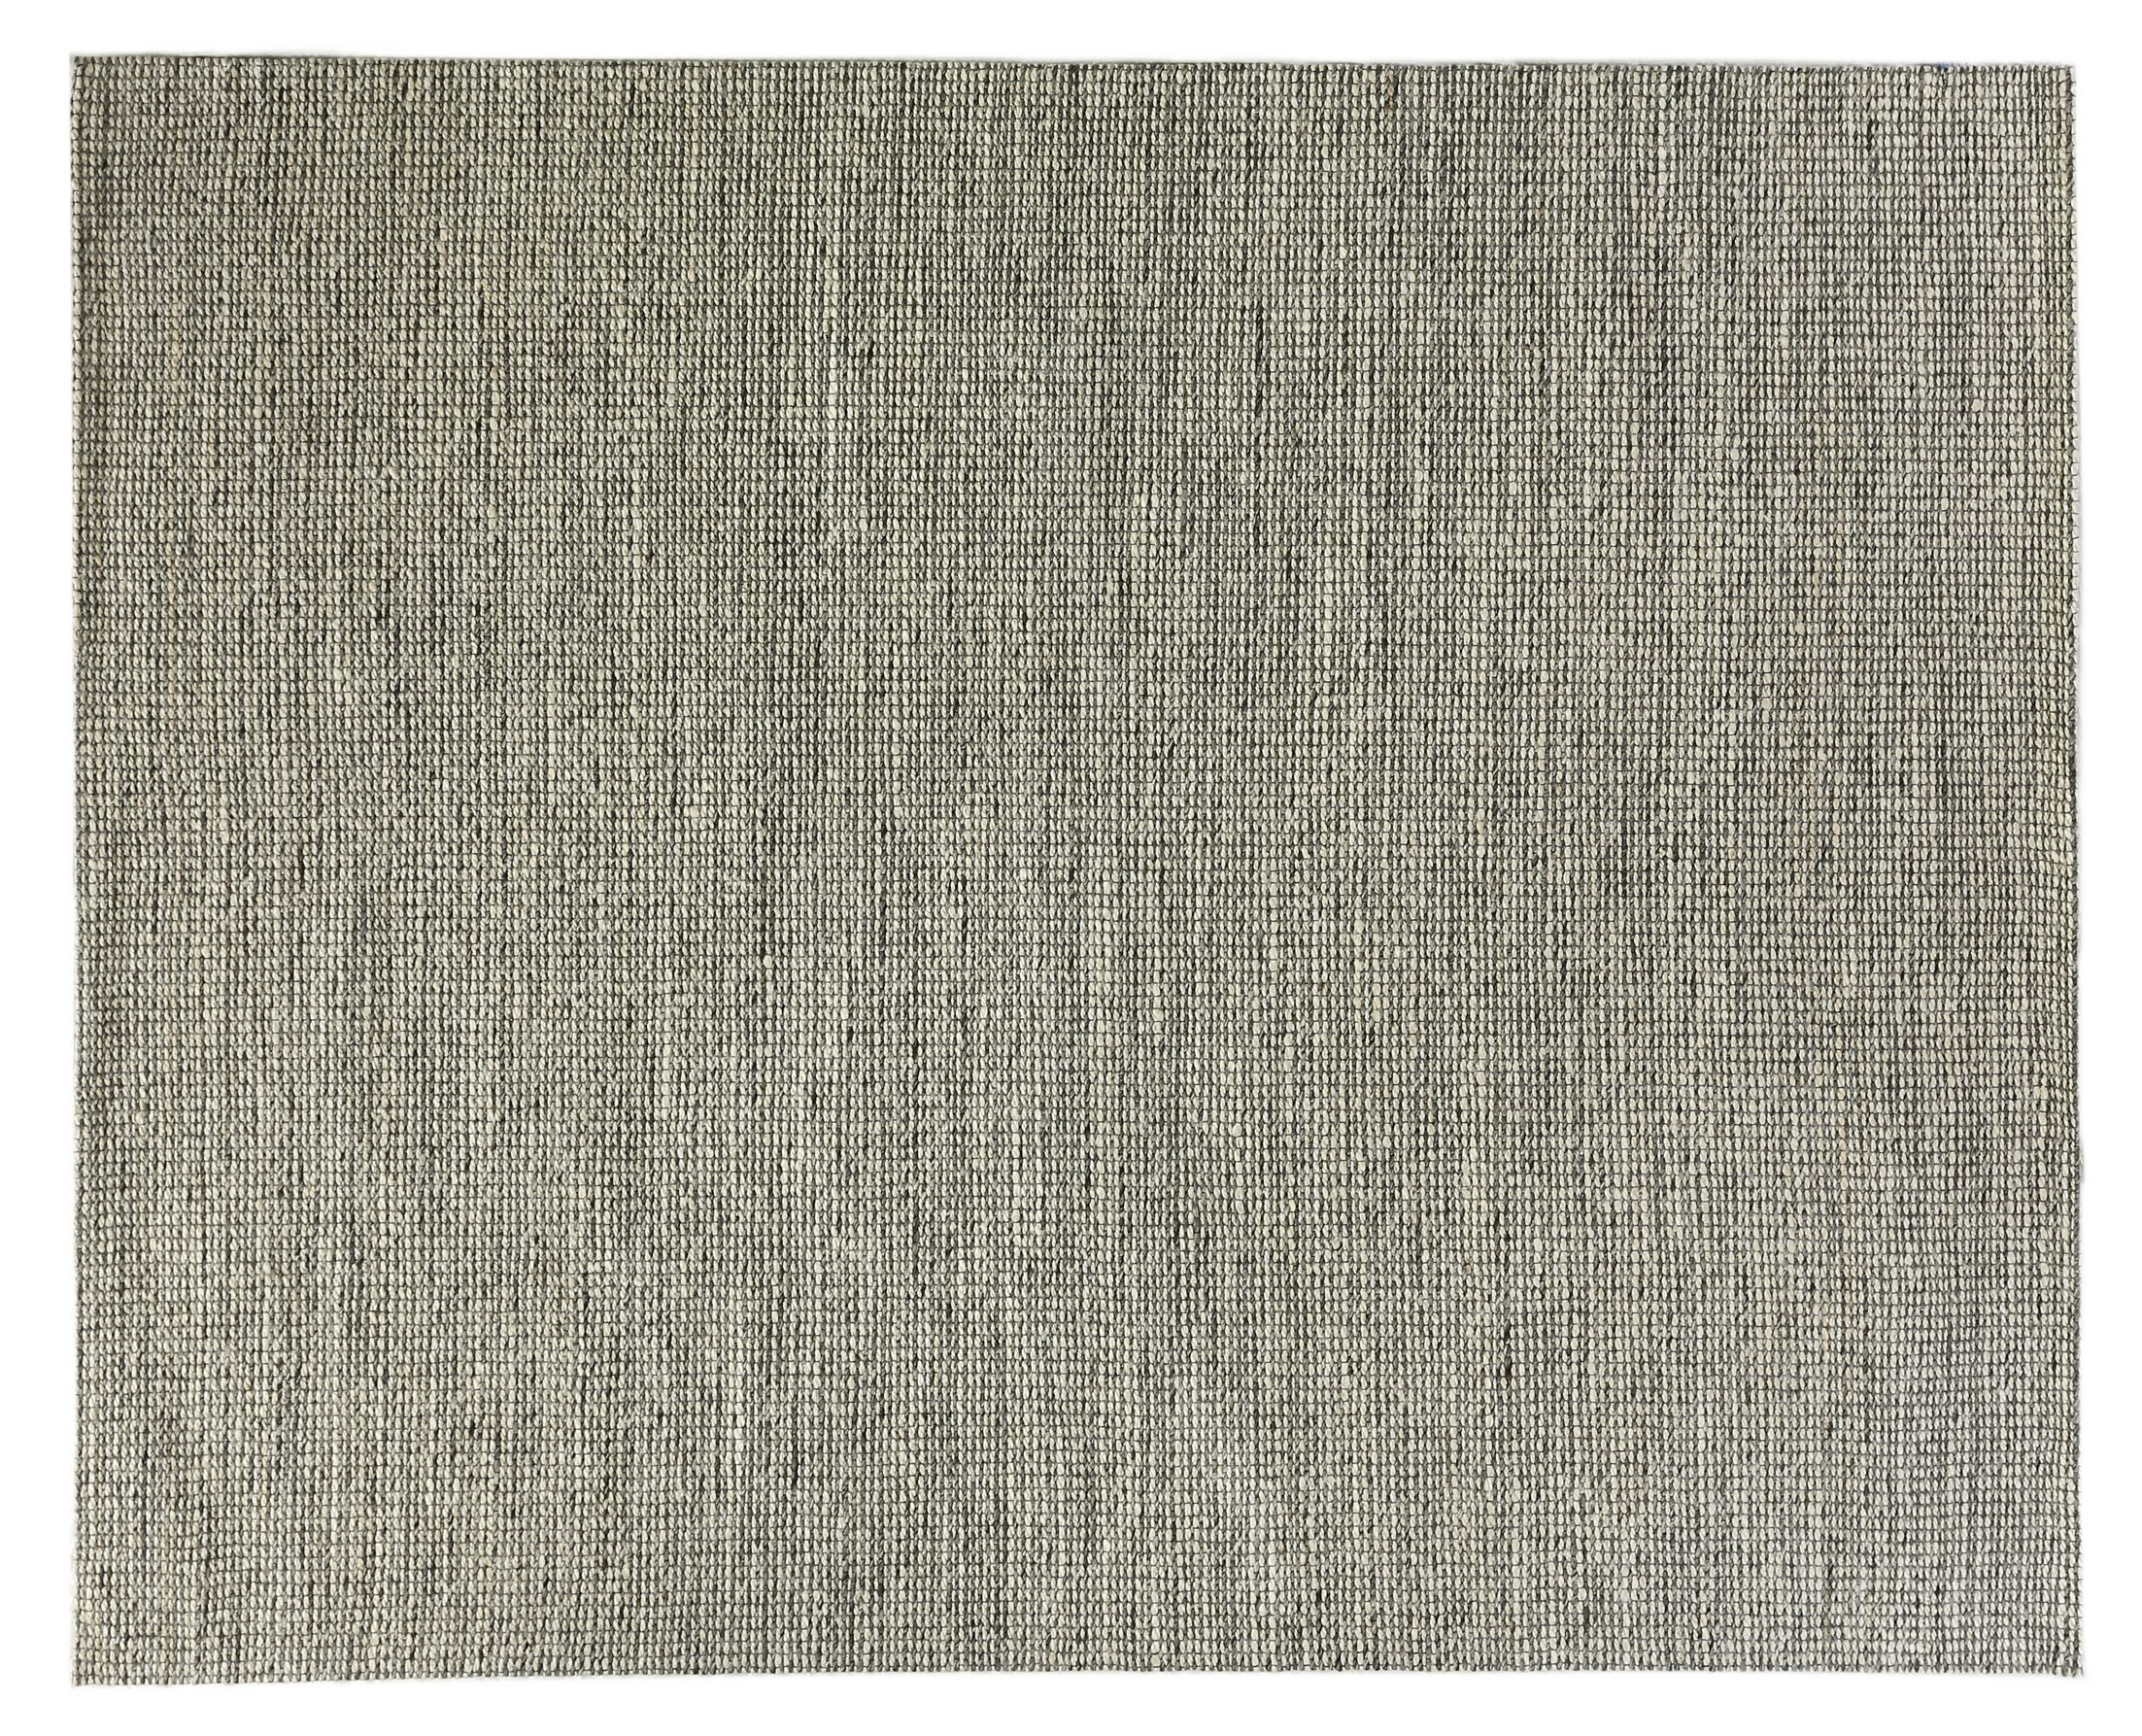 Crestwood Hand-Woven Black Area Rug Rug Size: Rectangle 12' x 15'